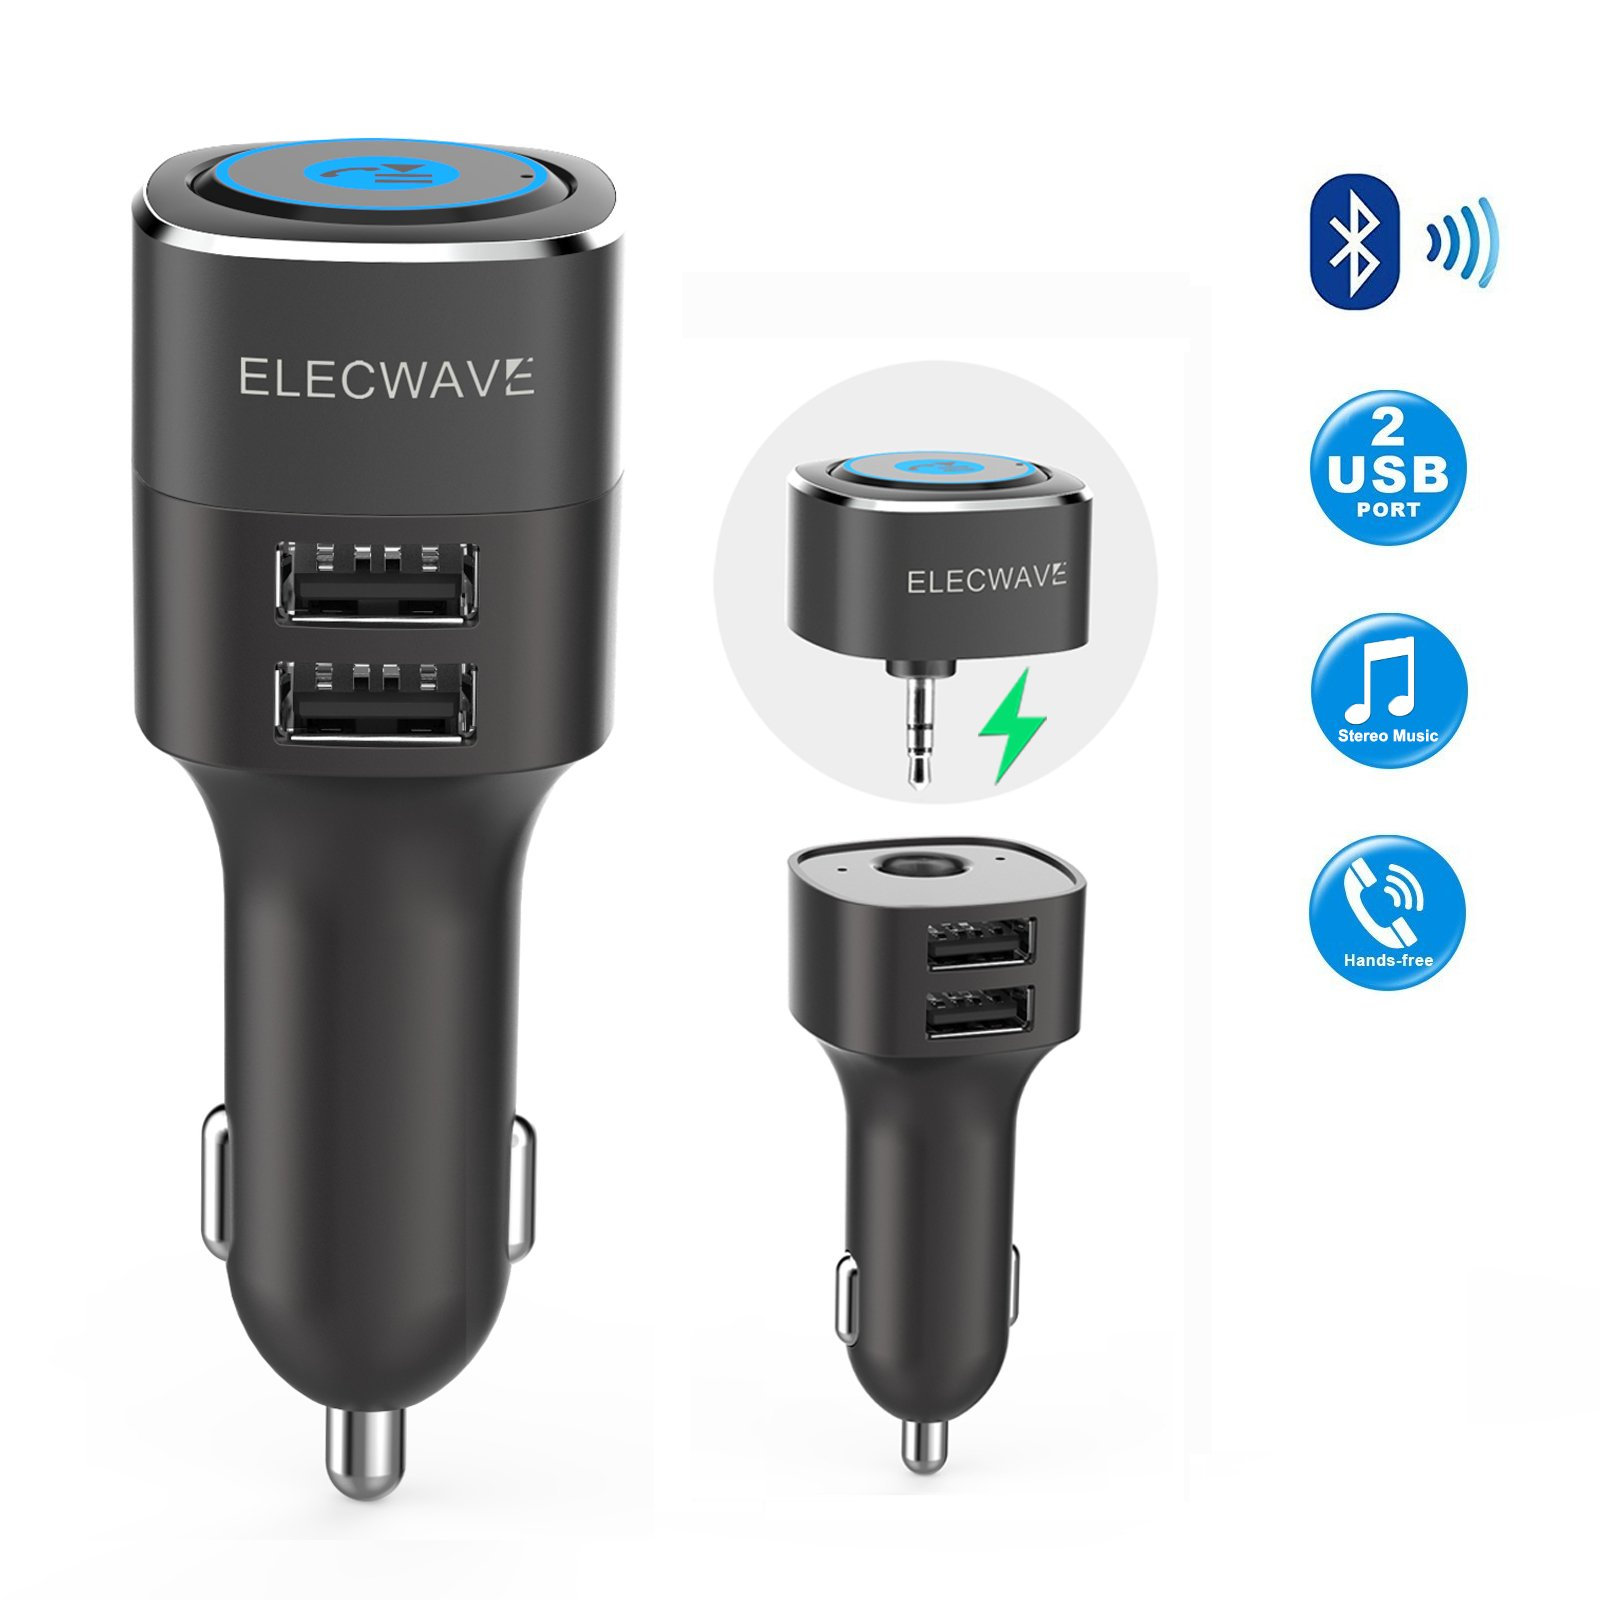 Bluetooth Receiver, Elecwave Bluetooth 4.2 Car Receiver & Wireless Audio Adapter for Music Streaming Car/Home Stereo Sound System - Hands-Free Car Aux Adapter Car Kits for Speaker, 3.5mm AUX in Only by Elecwave (Image #1)